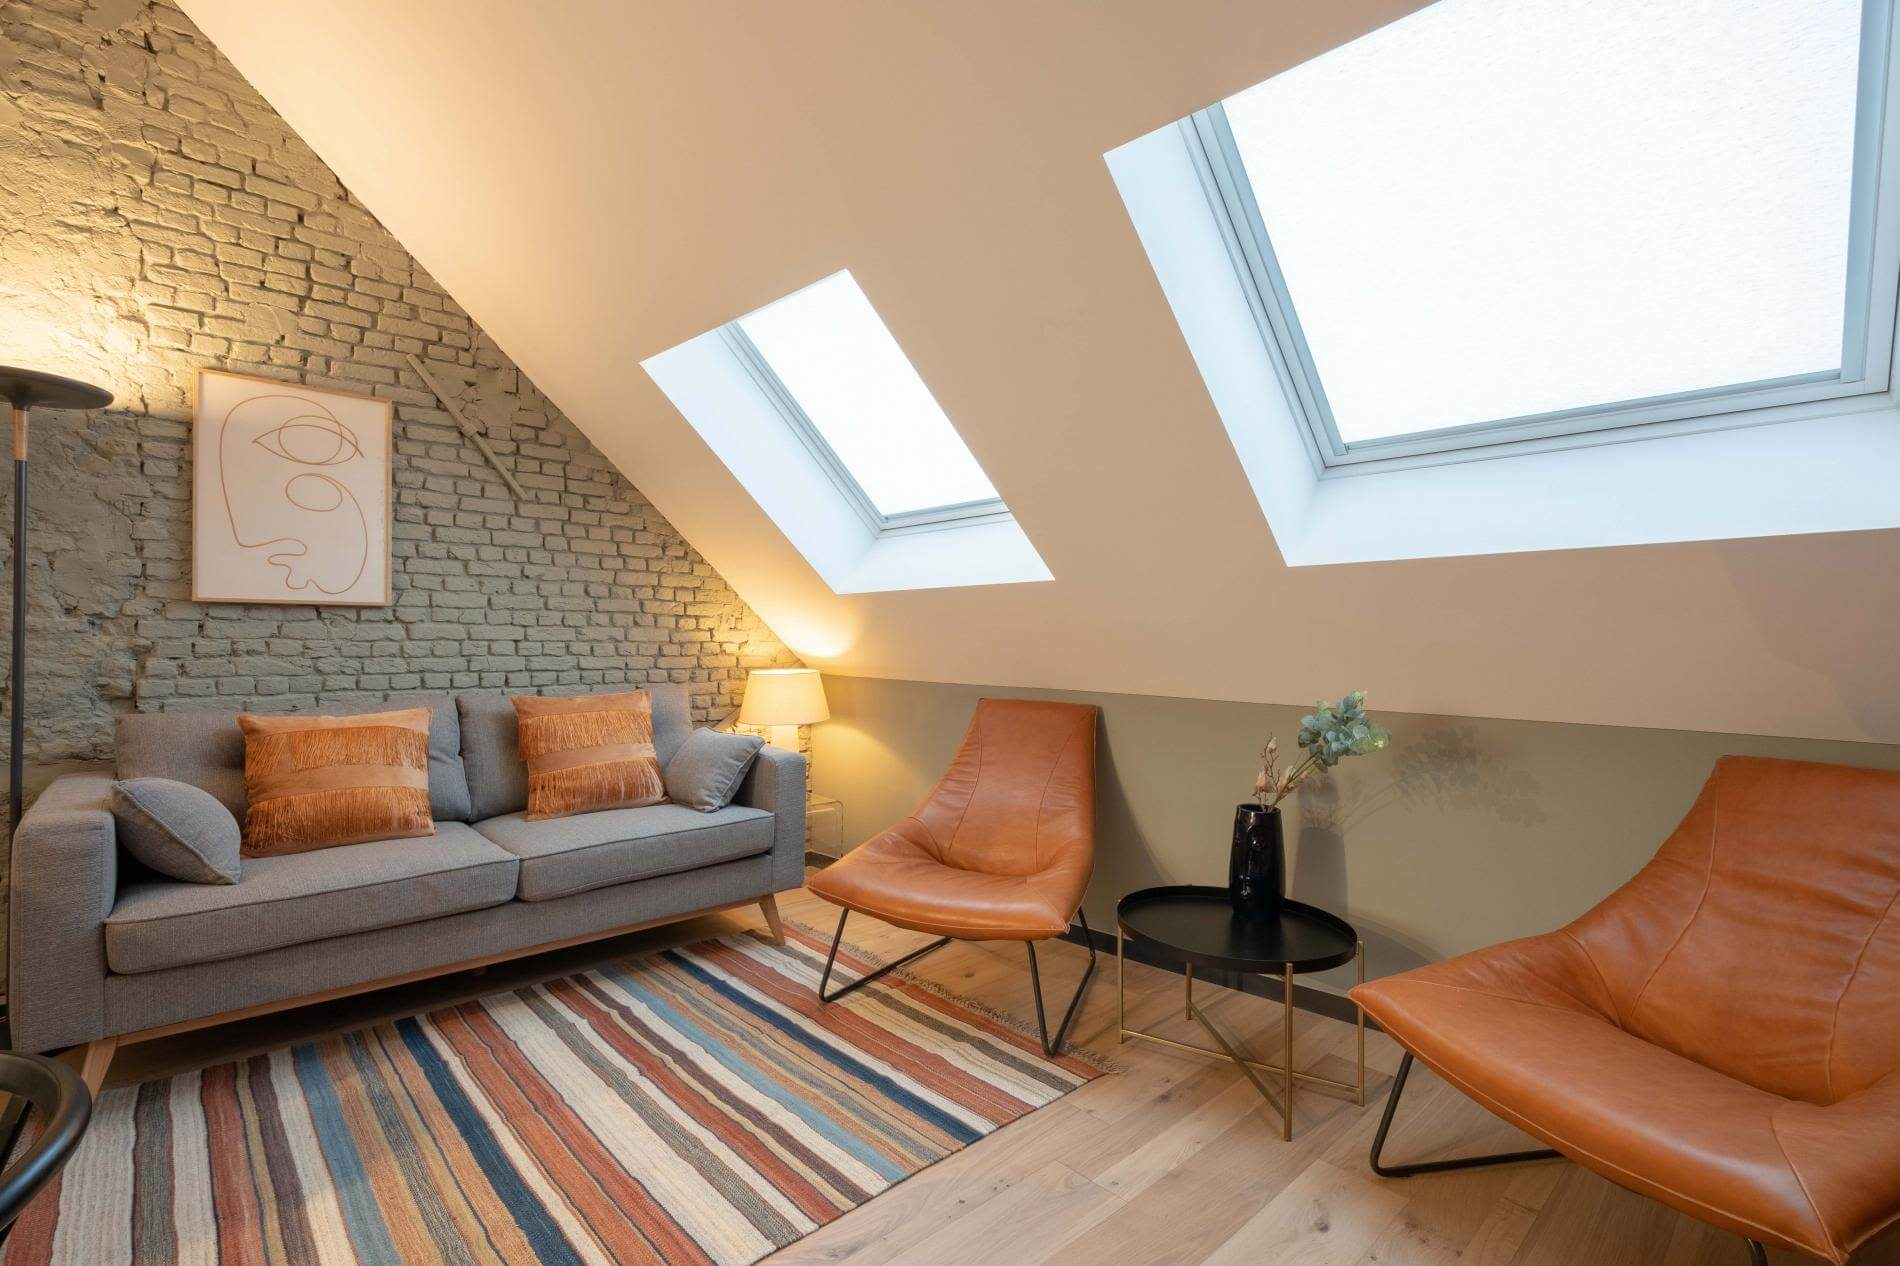 Duplex rental accommodation in Antwerp ideal for families of up to 4